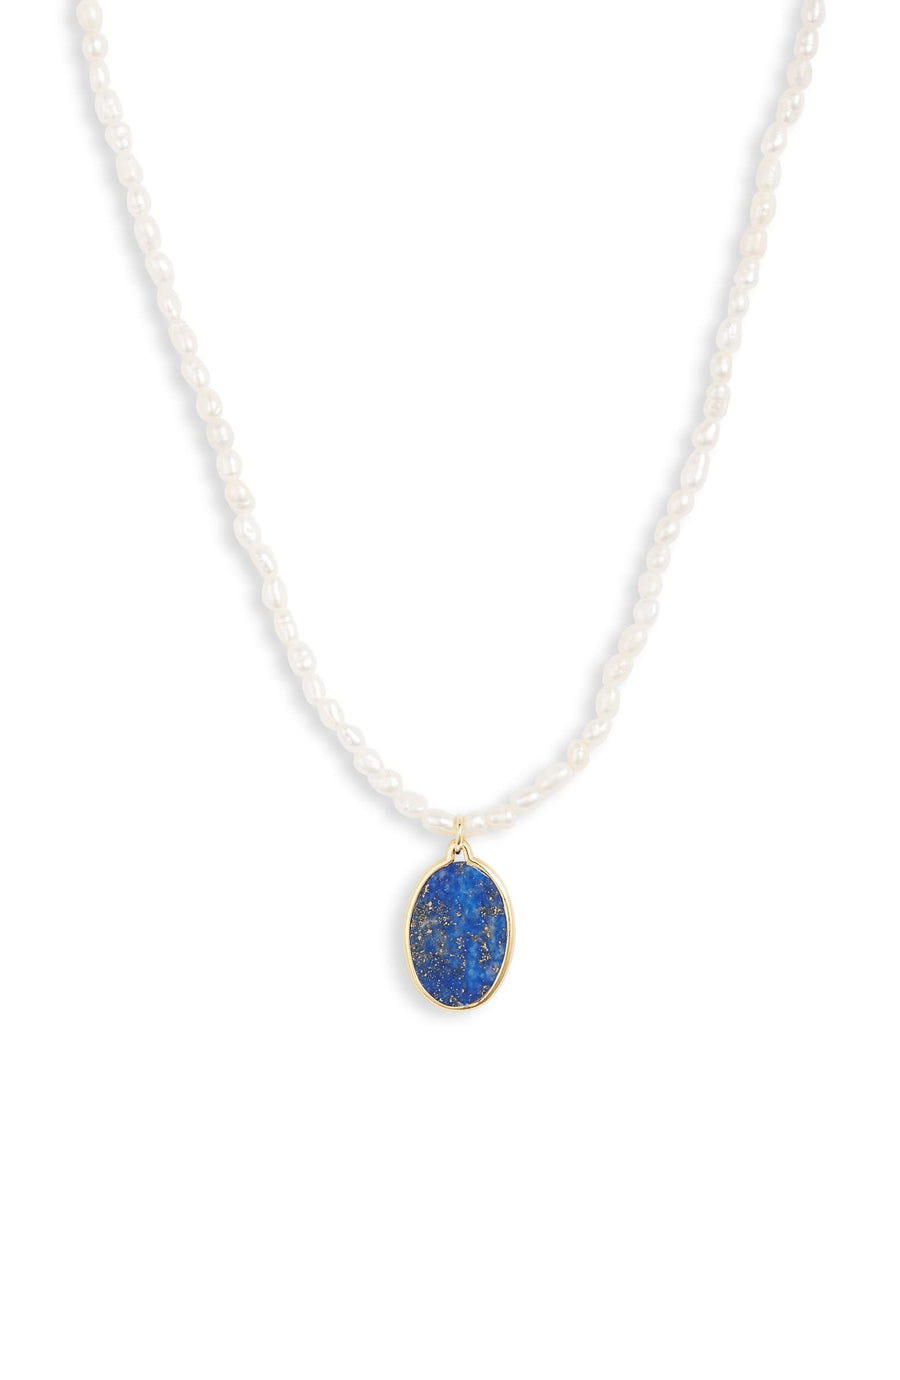 BLUE WONDER NECKLACE